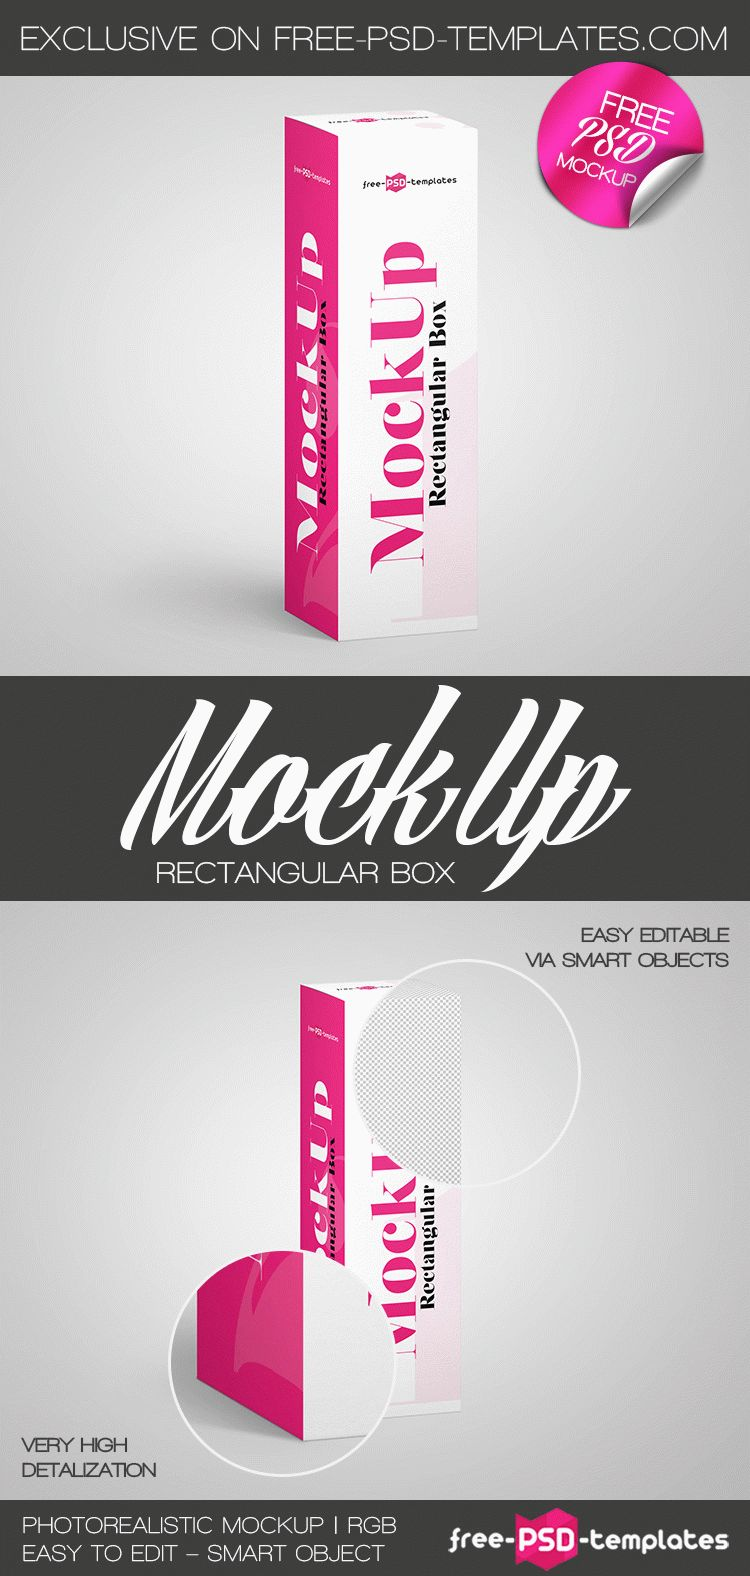 Download Free Rectangular Box Mock Up In Psd Free Psd Templates Box Mockup Psd Template Free Mockup Template